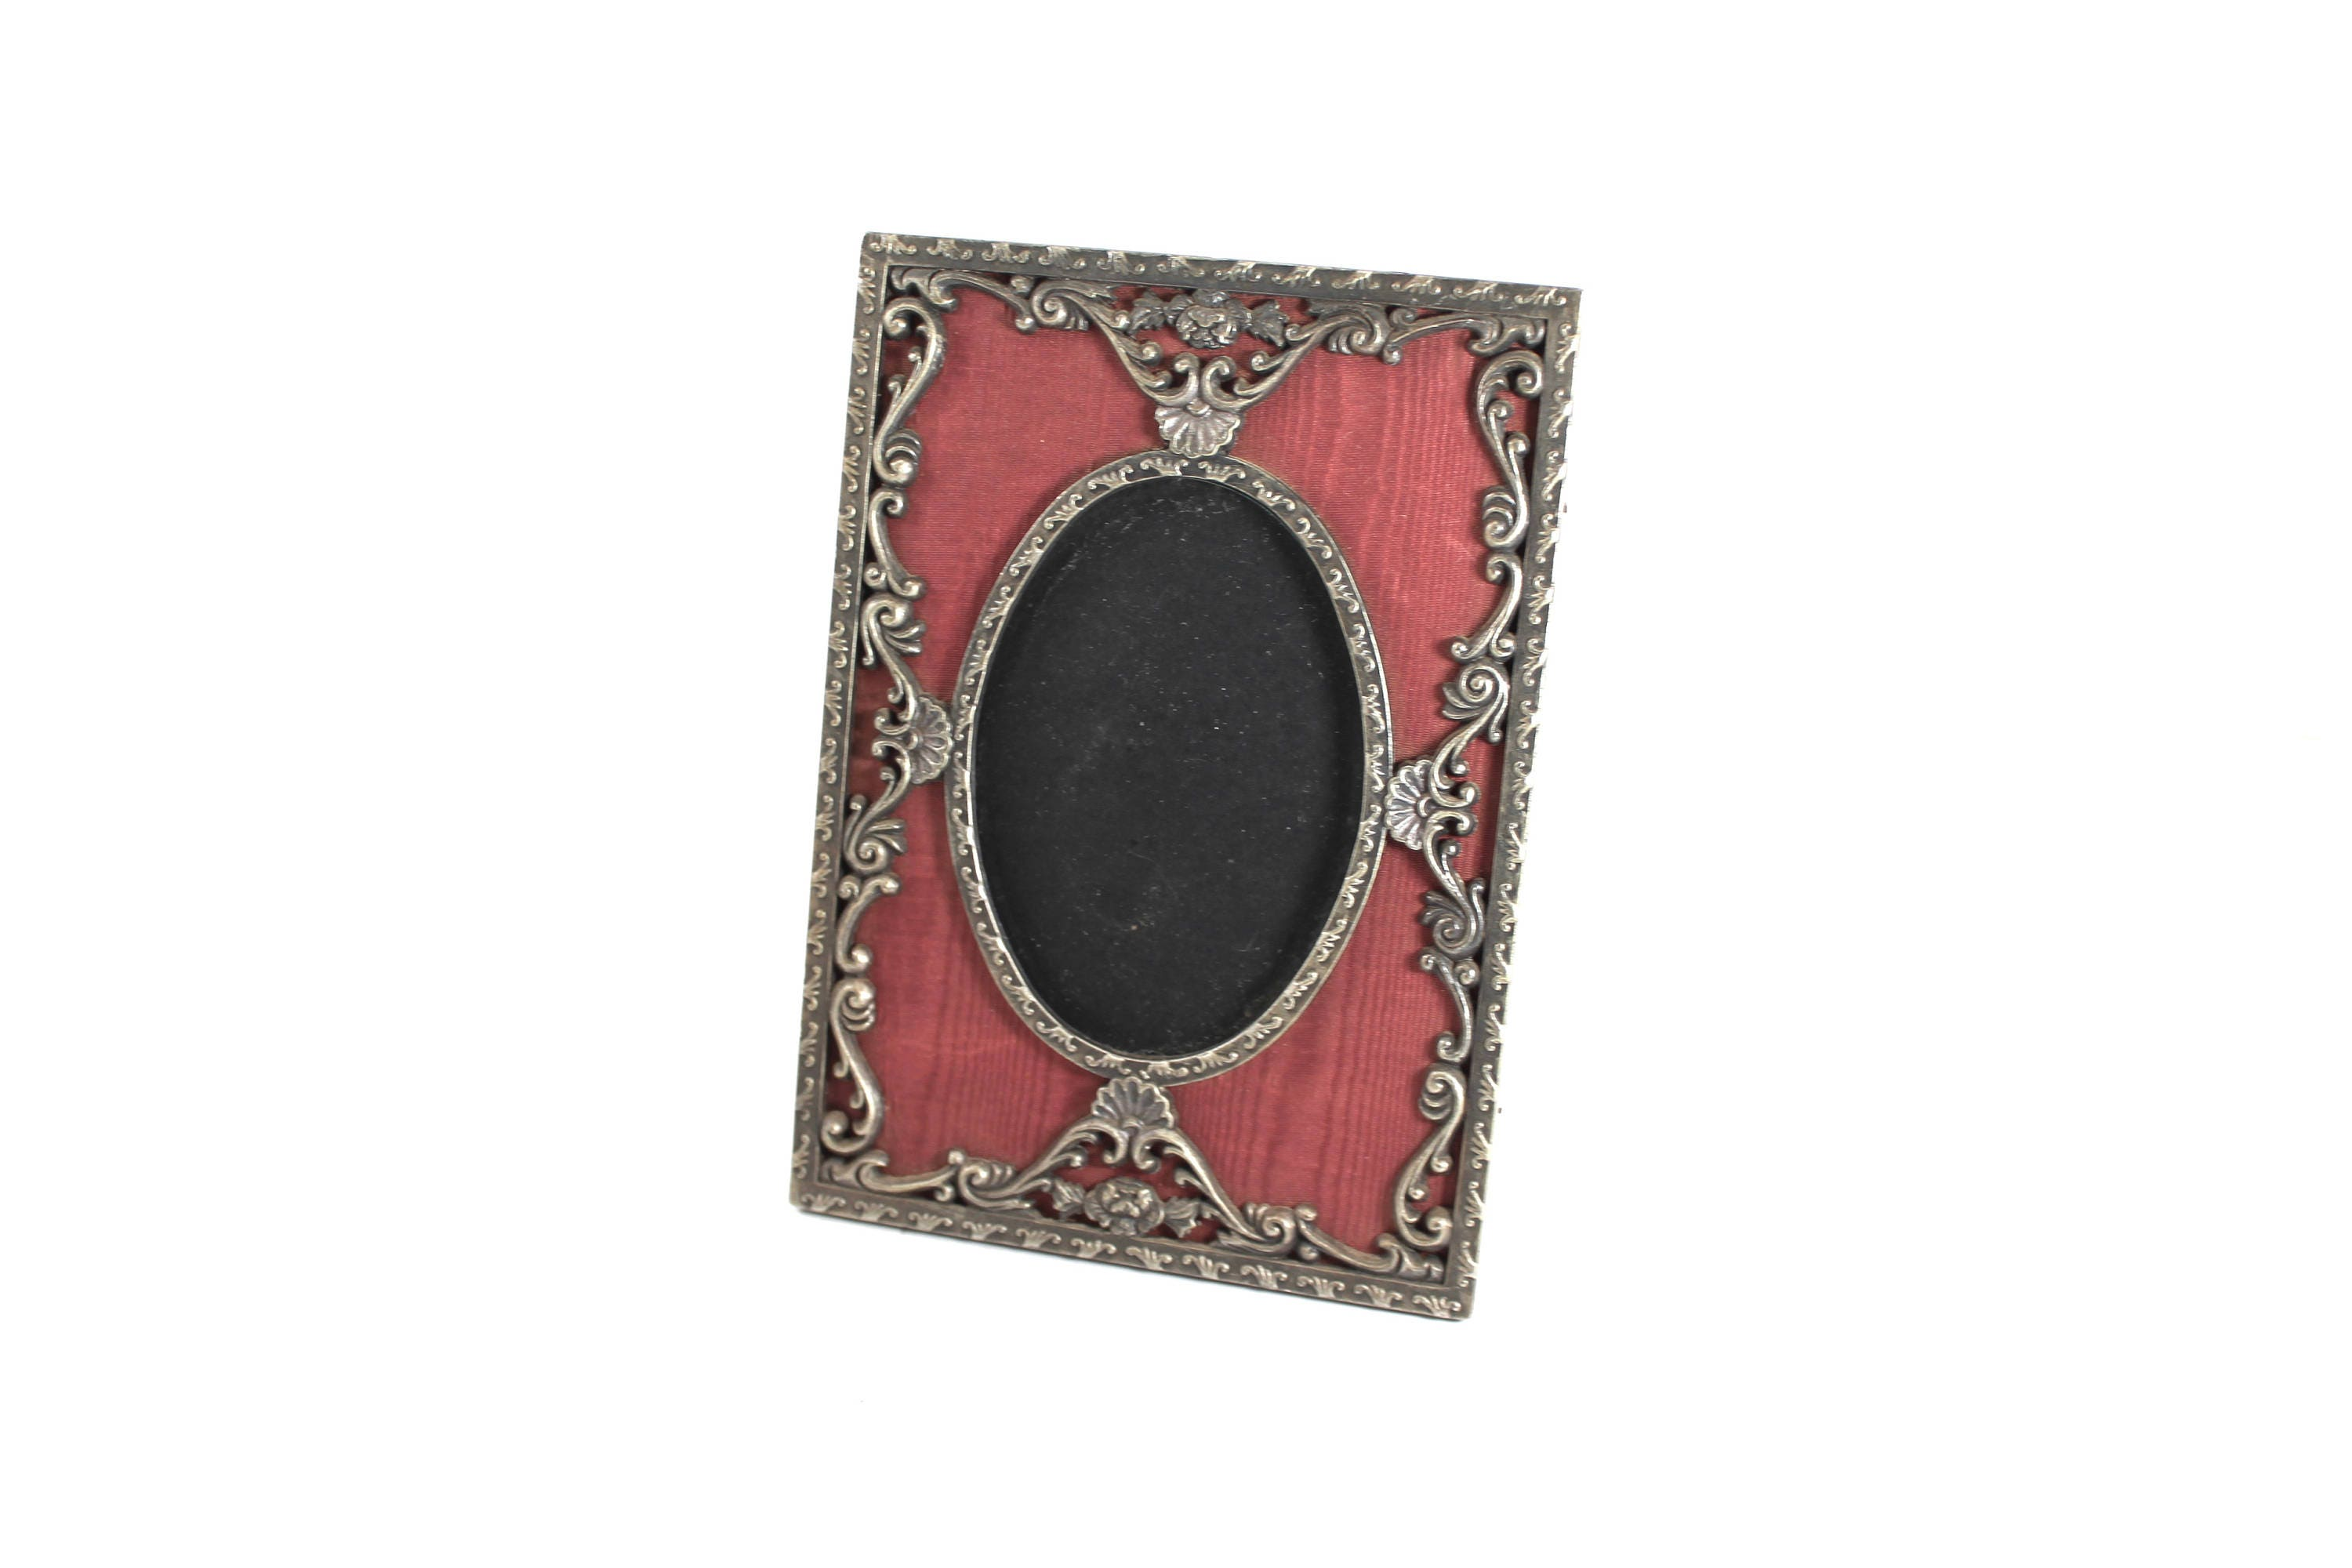 Vintage 3x4 oval picture frame with brass-tone metal and burgundy ...